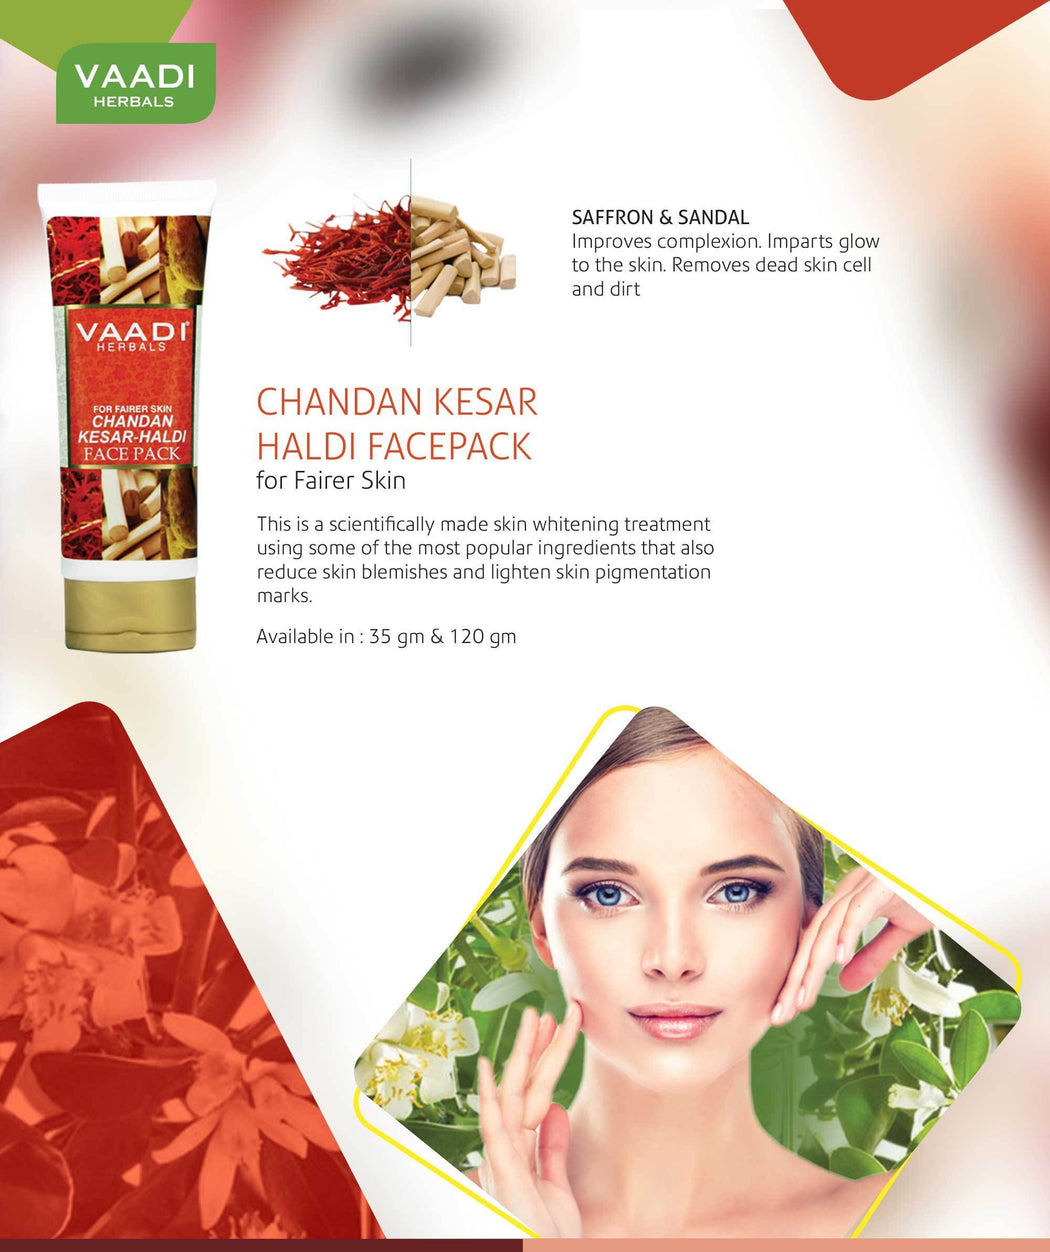 Organic Chandan Kesar Fairness Face Pack - Removes Marks and Lightens Skin Tone - Repairs and Protects Skin (120 gms/ 4.3 oz)